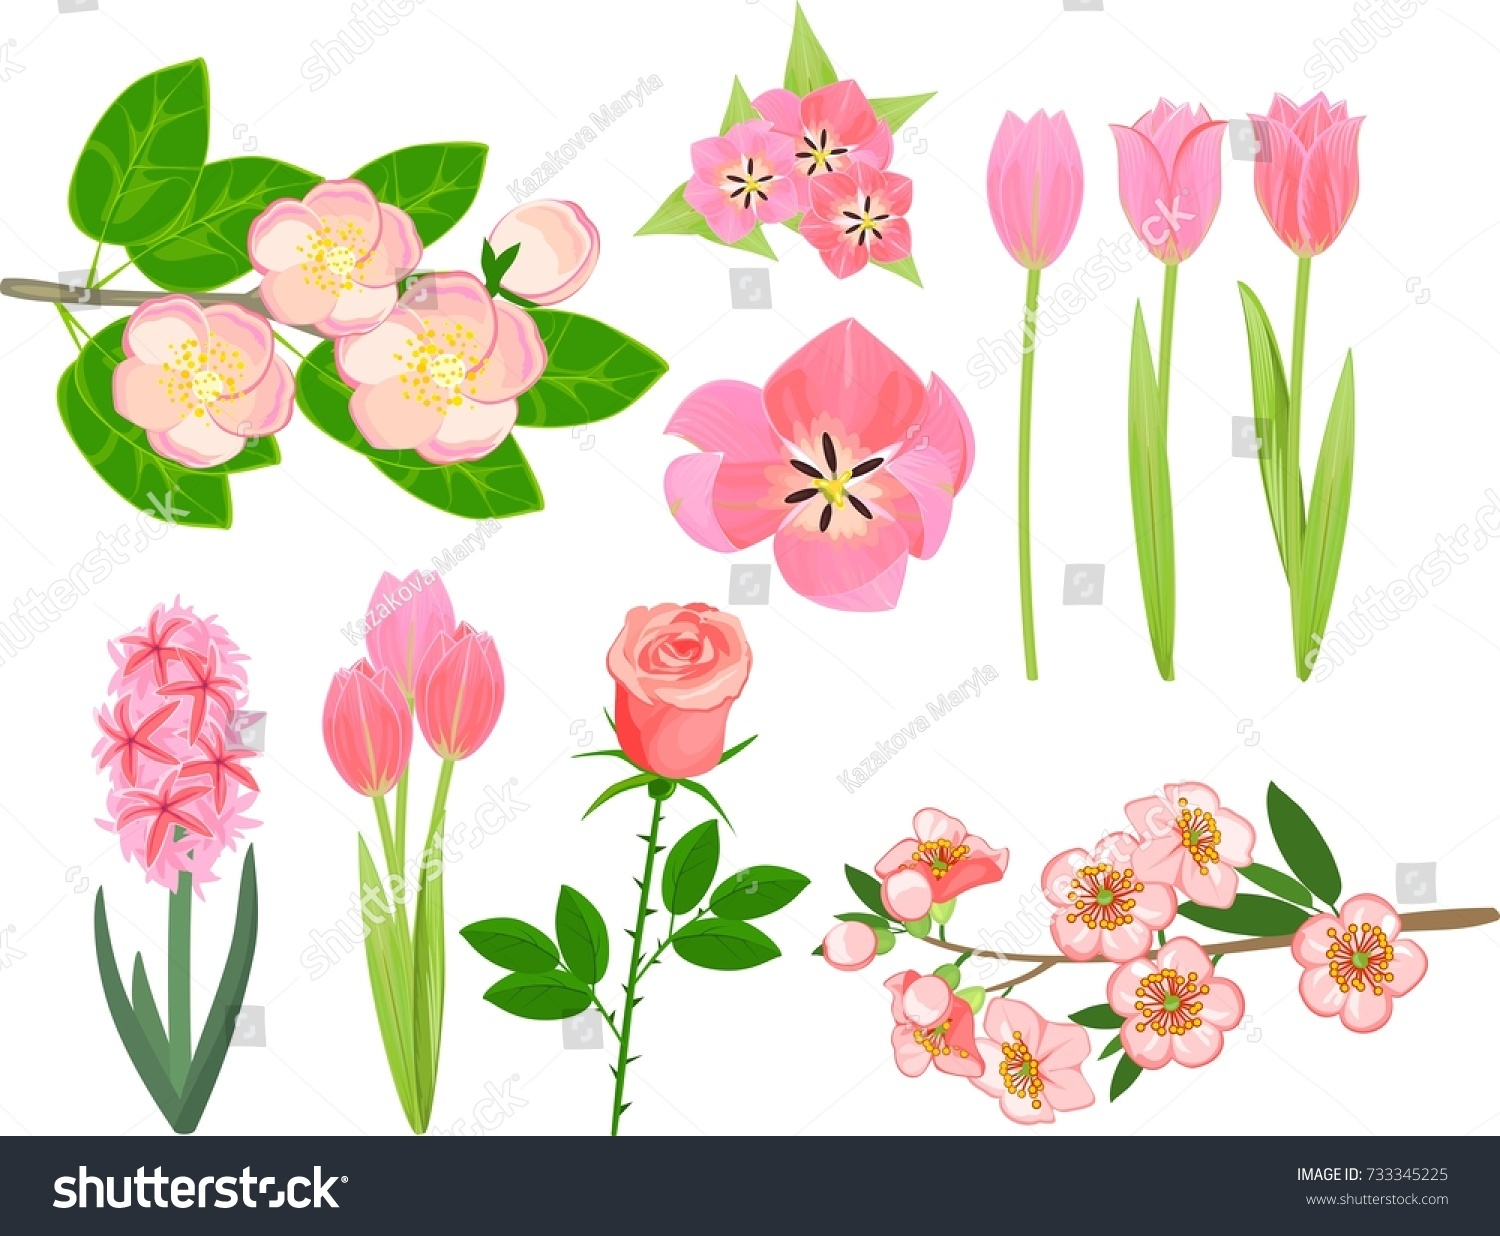 Set Of Different Garden Plants With Pink Flowers On White Background